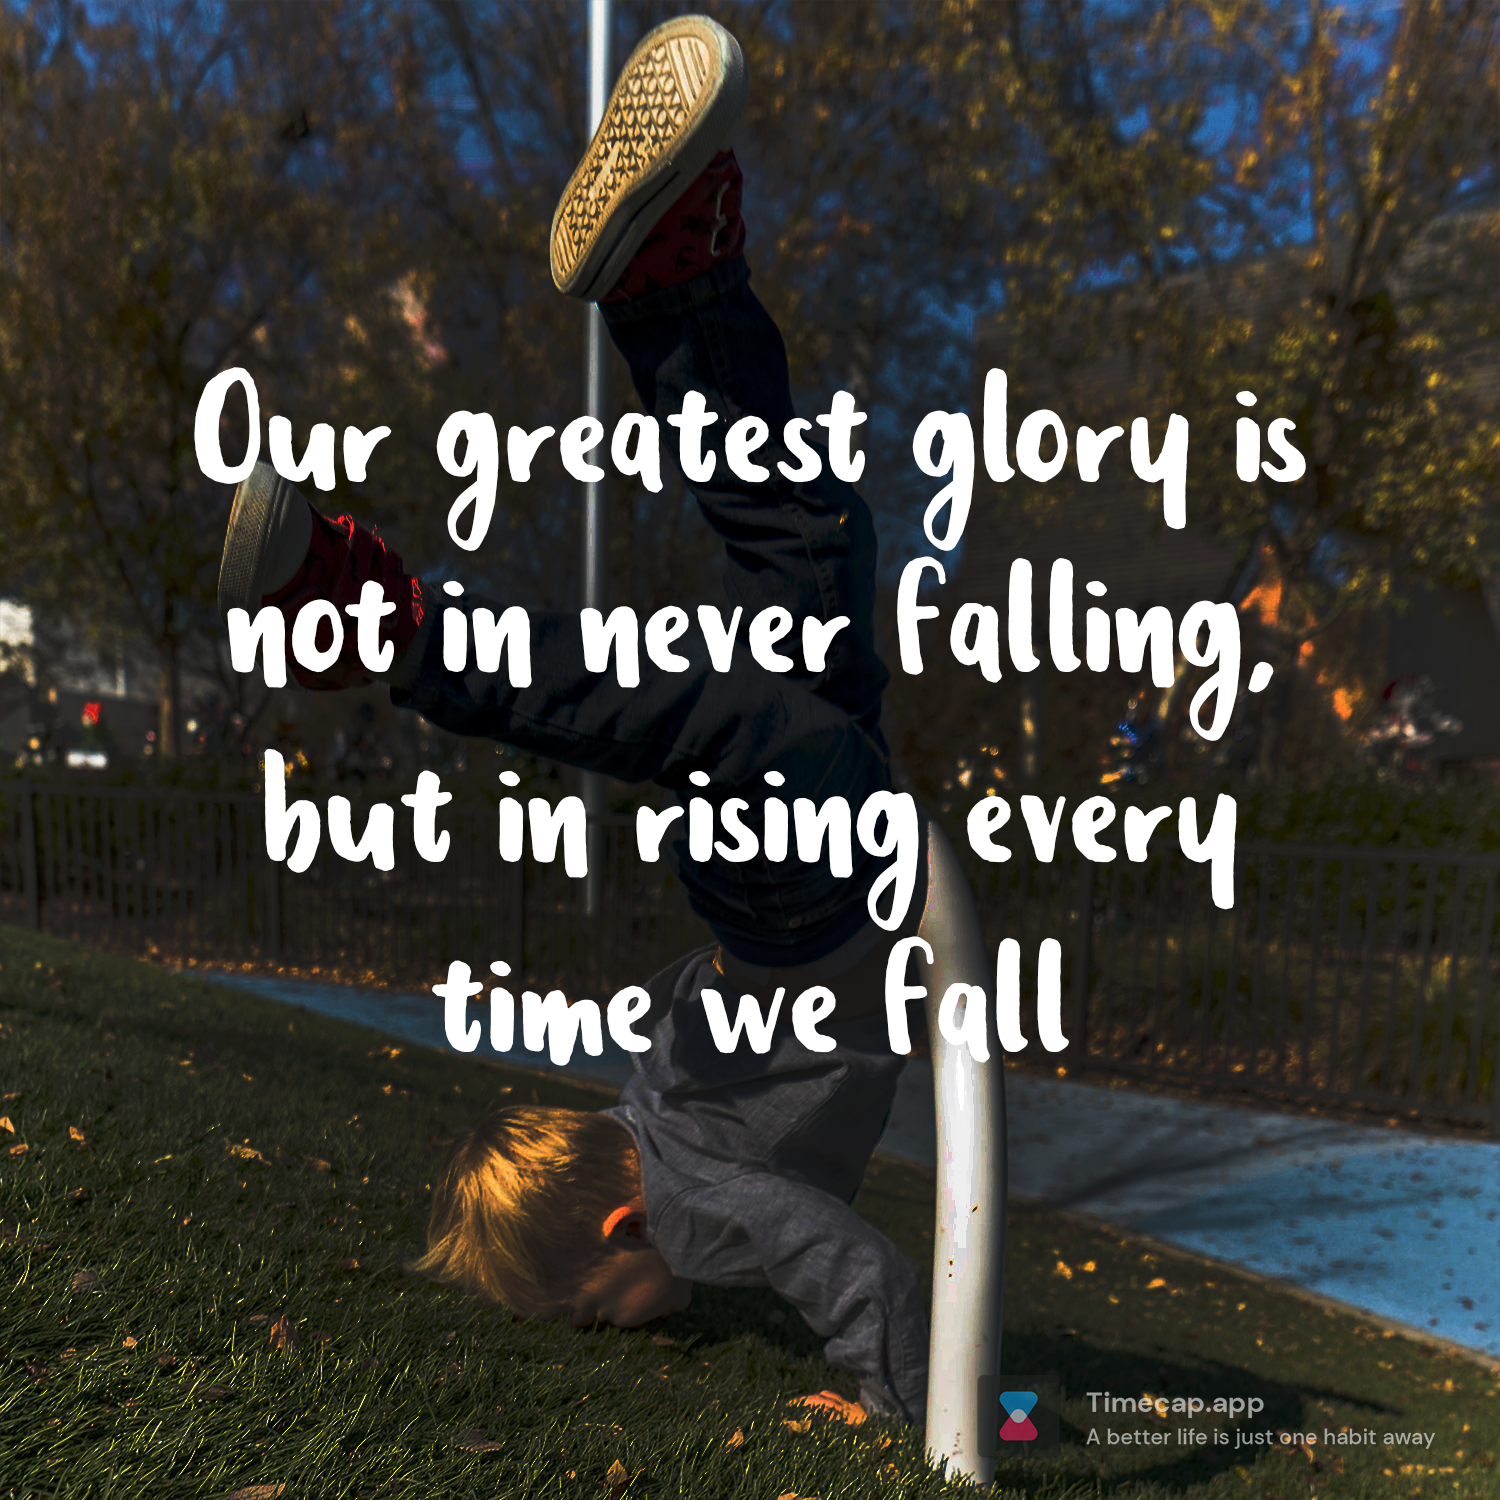 Get up and keep fighting [Image]